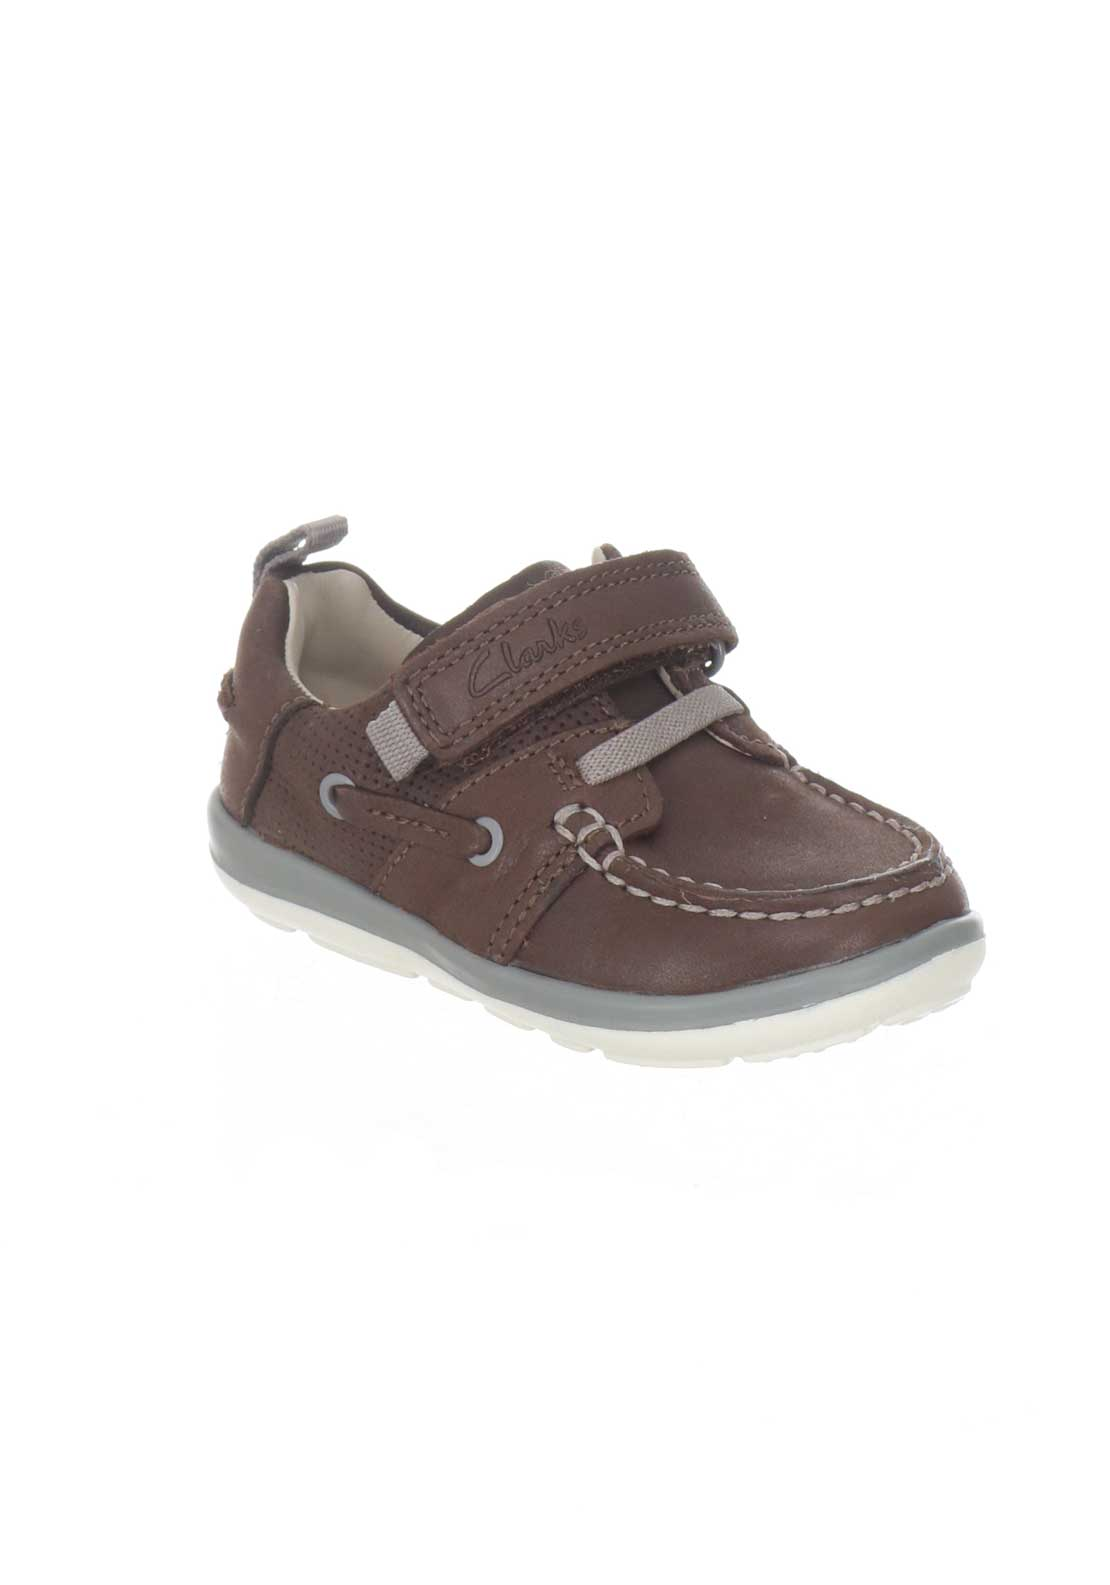 Clarks Baby Boys Leather Softly Boat Shoes Brown